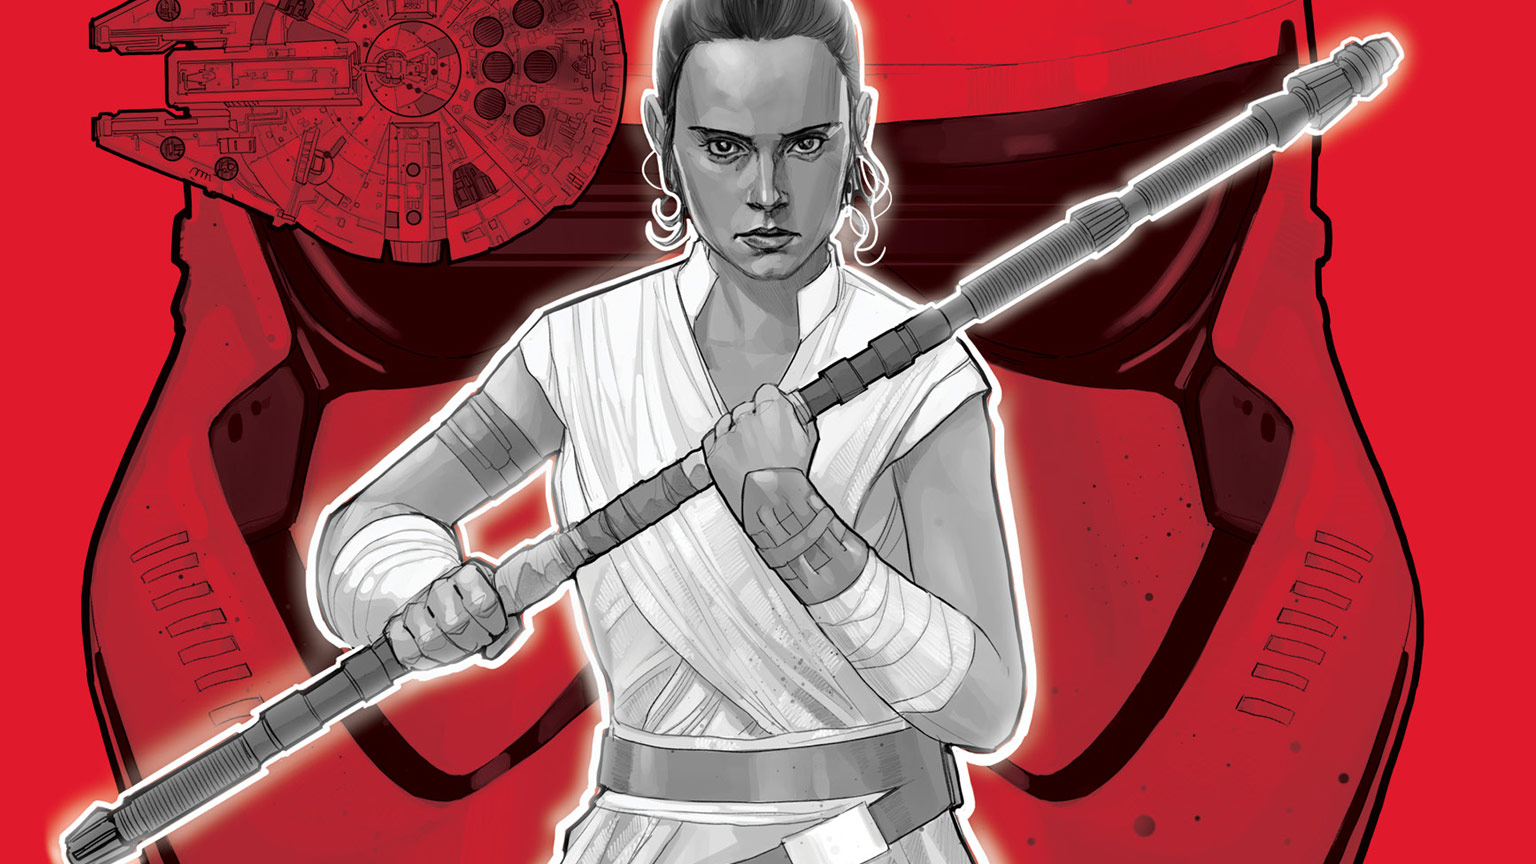 Rey on the cover of Spark of the Resistance.